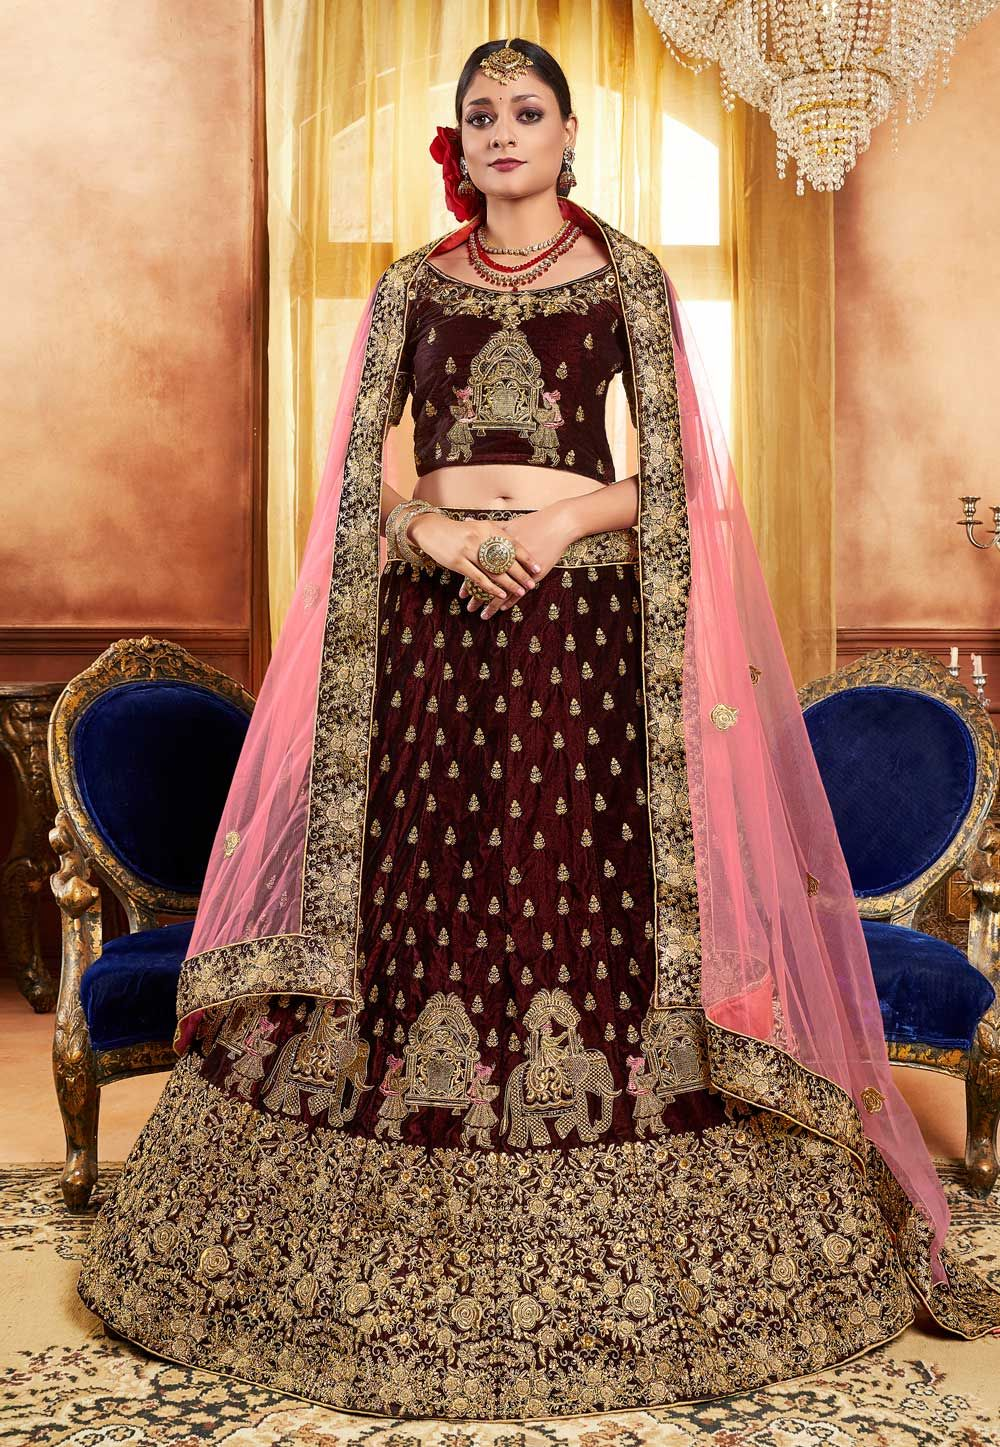 2fbe7bf053 Buy Brown Velvet Embroidered Lehenga Choli 160089 online at best price from  vast collection of Lehenga Choli and Chaniya Choli at Indianclothstore.com.